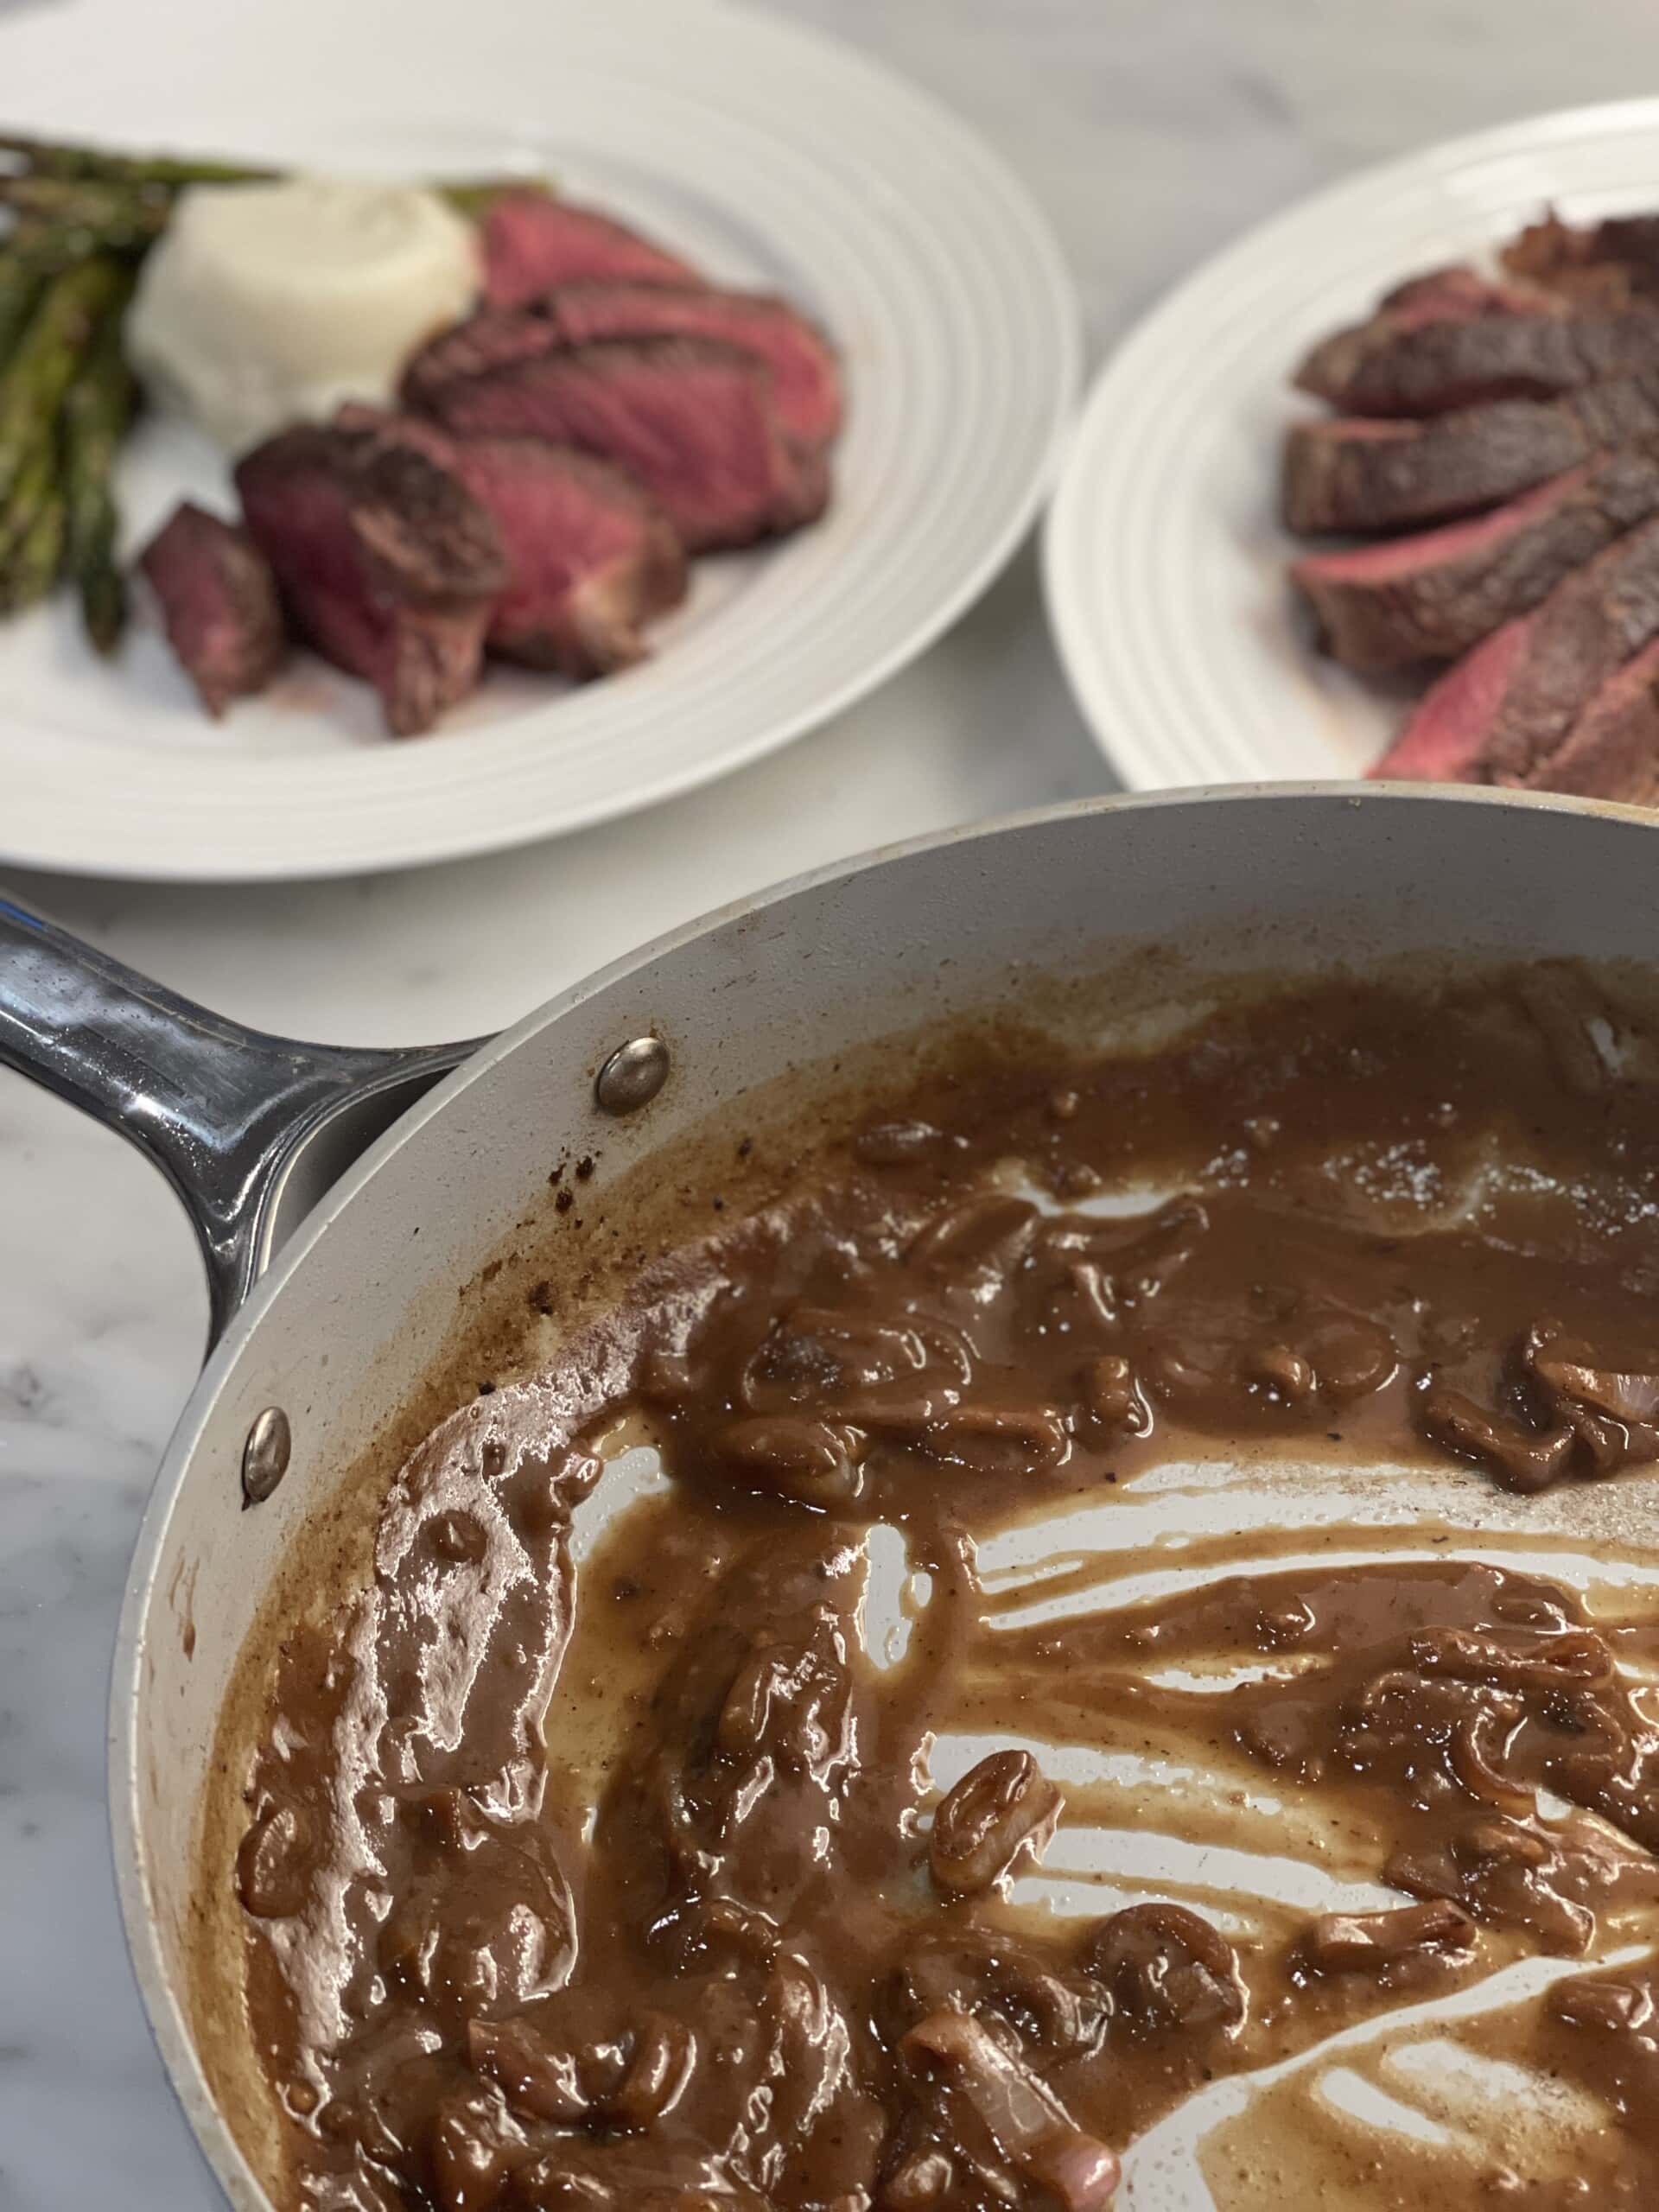 Bring the sauce to a boil and cook it for about five minutes or until it appears thick and velvety in texture.